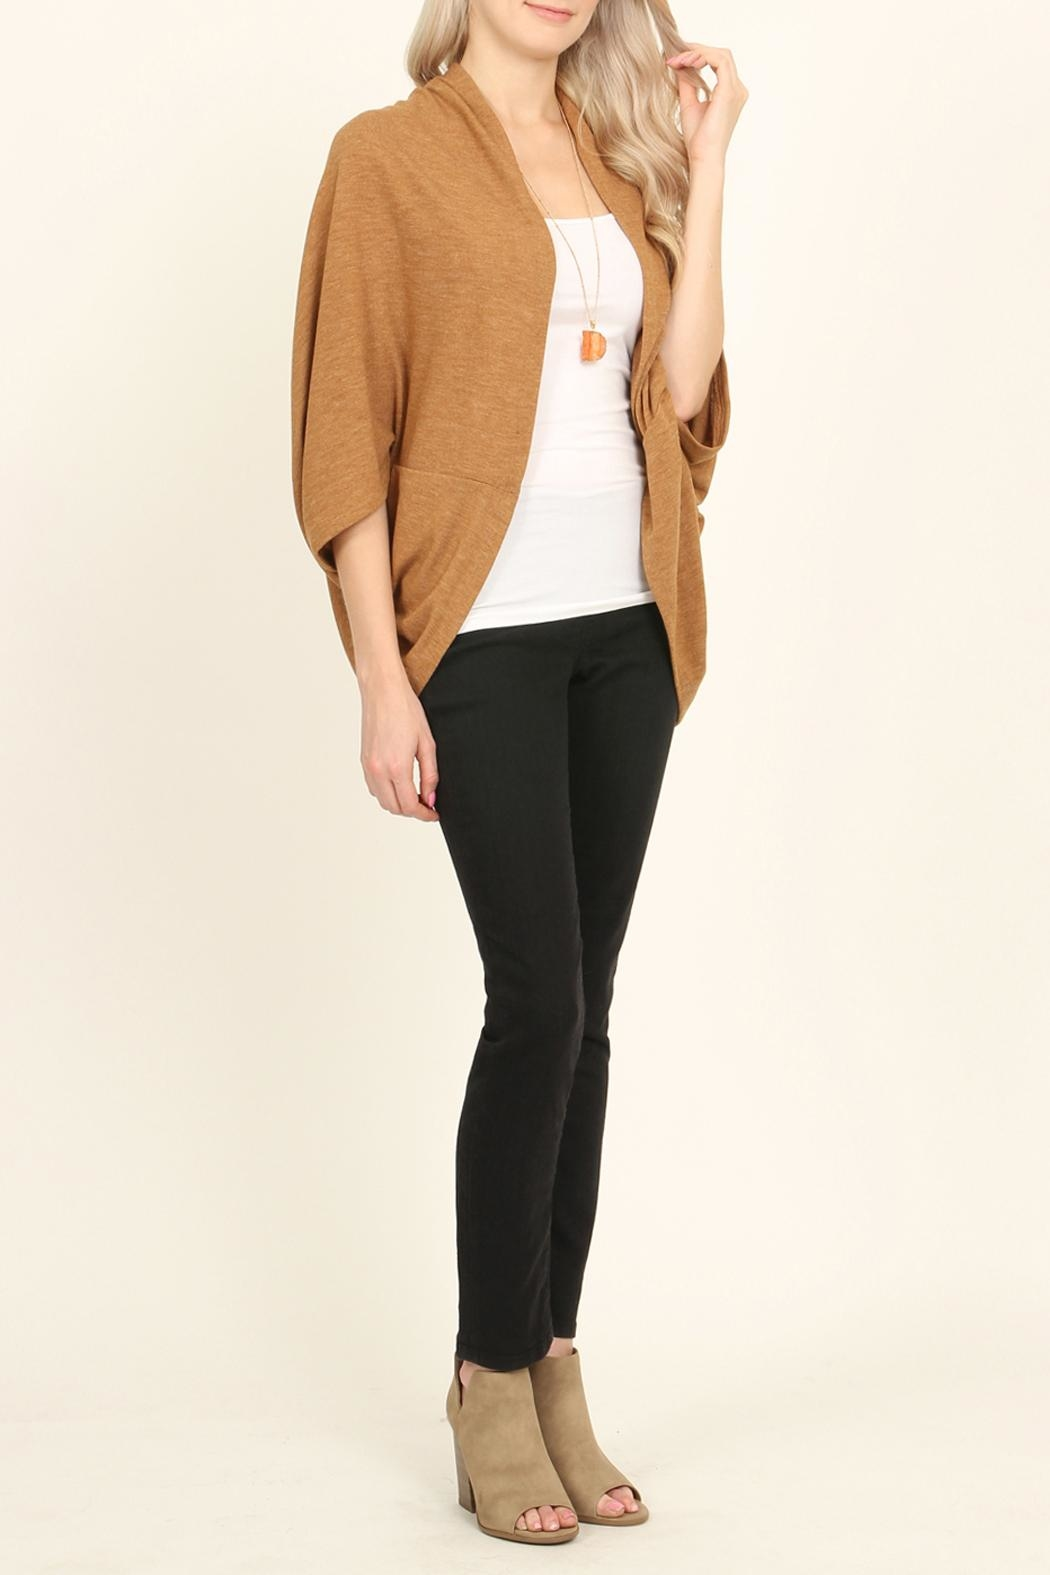 Riah Fashion Open Front Dolman Cardigan - Back Cropped Image